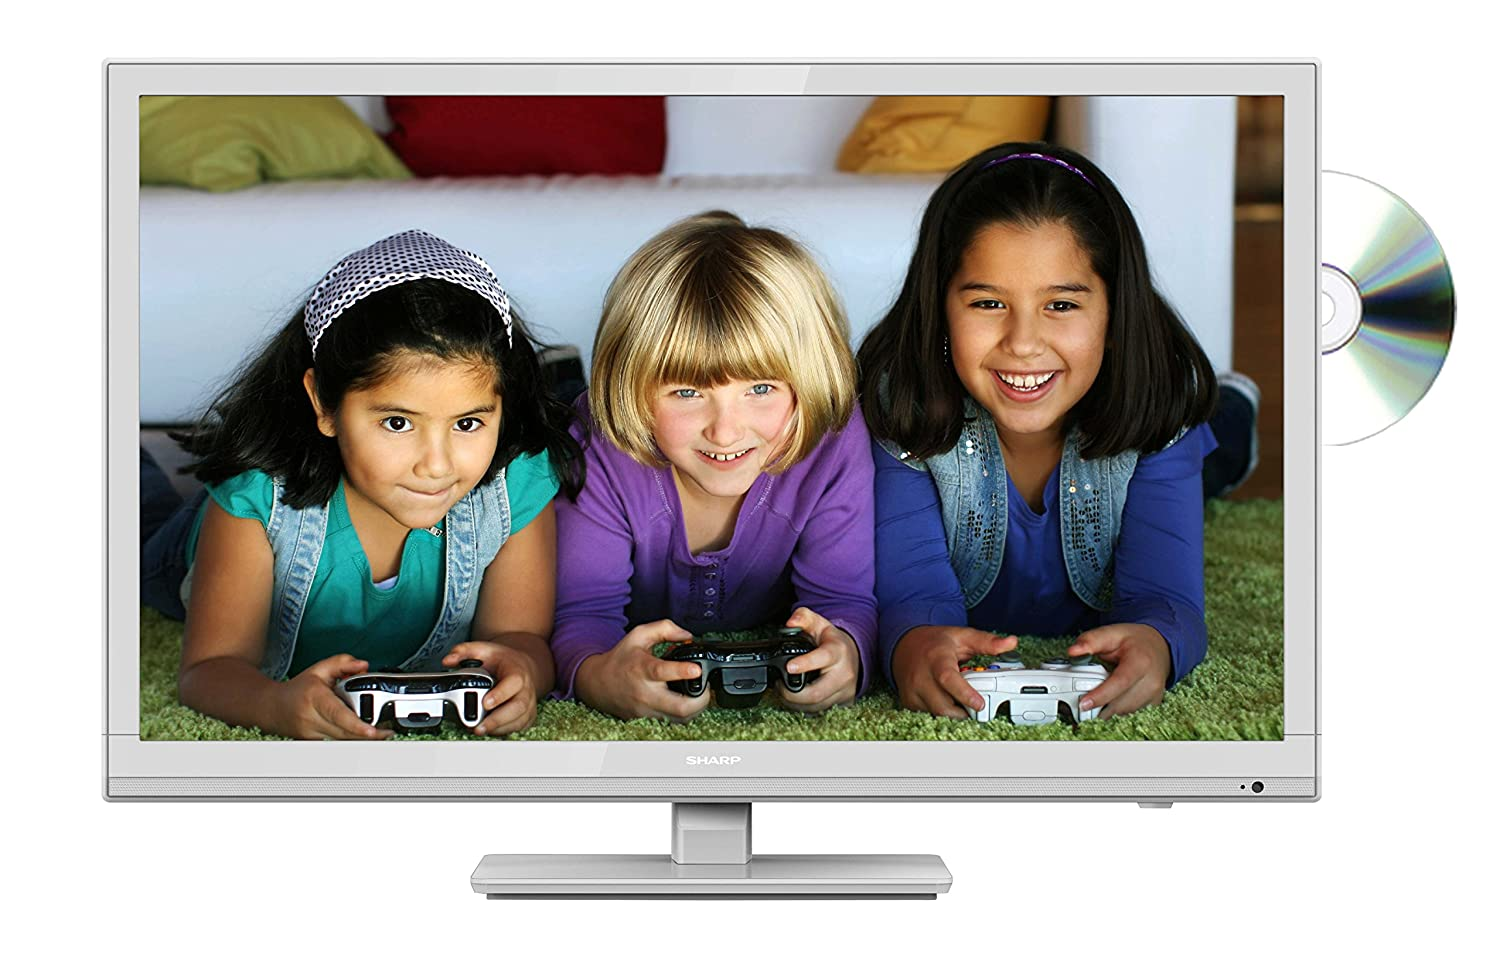 sharp 24 inch lc 24dhf4011k hd ready dvd combi led tv with freeview hd. sharp lc-24dhe4011kw 24-inch hd ready tv with freeview and dvd - white: amazon.co.uk: 24 inch lc 24dhf4011k hd dvd combi led tv